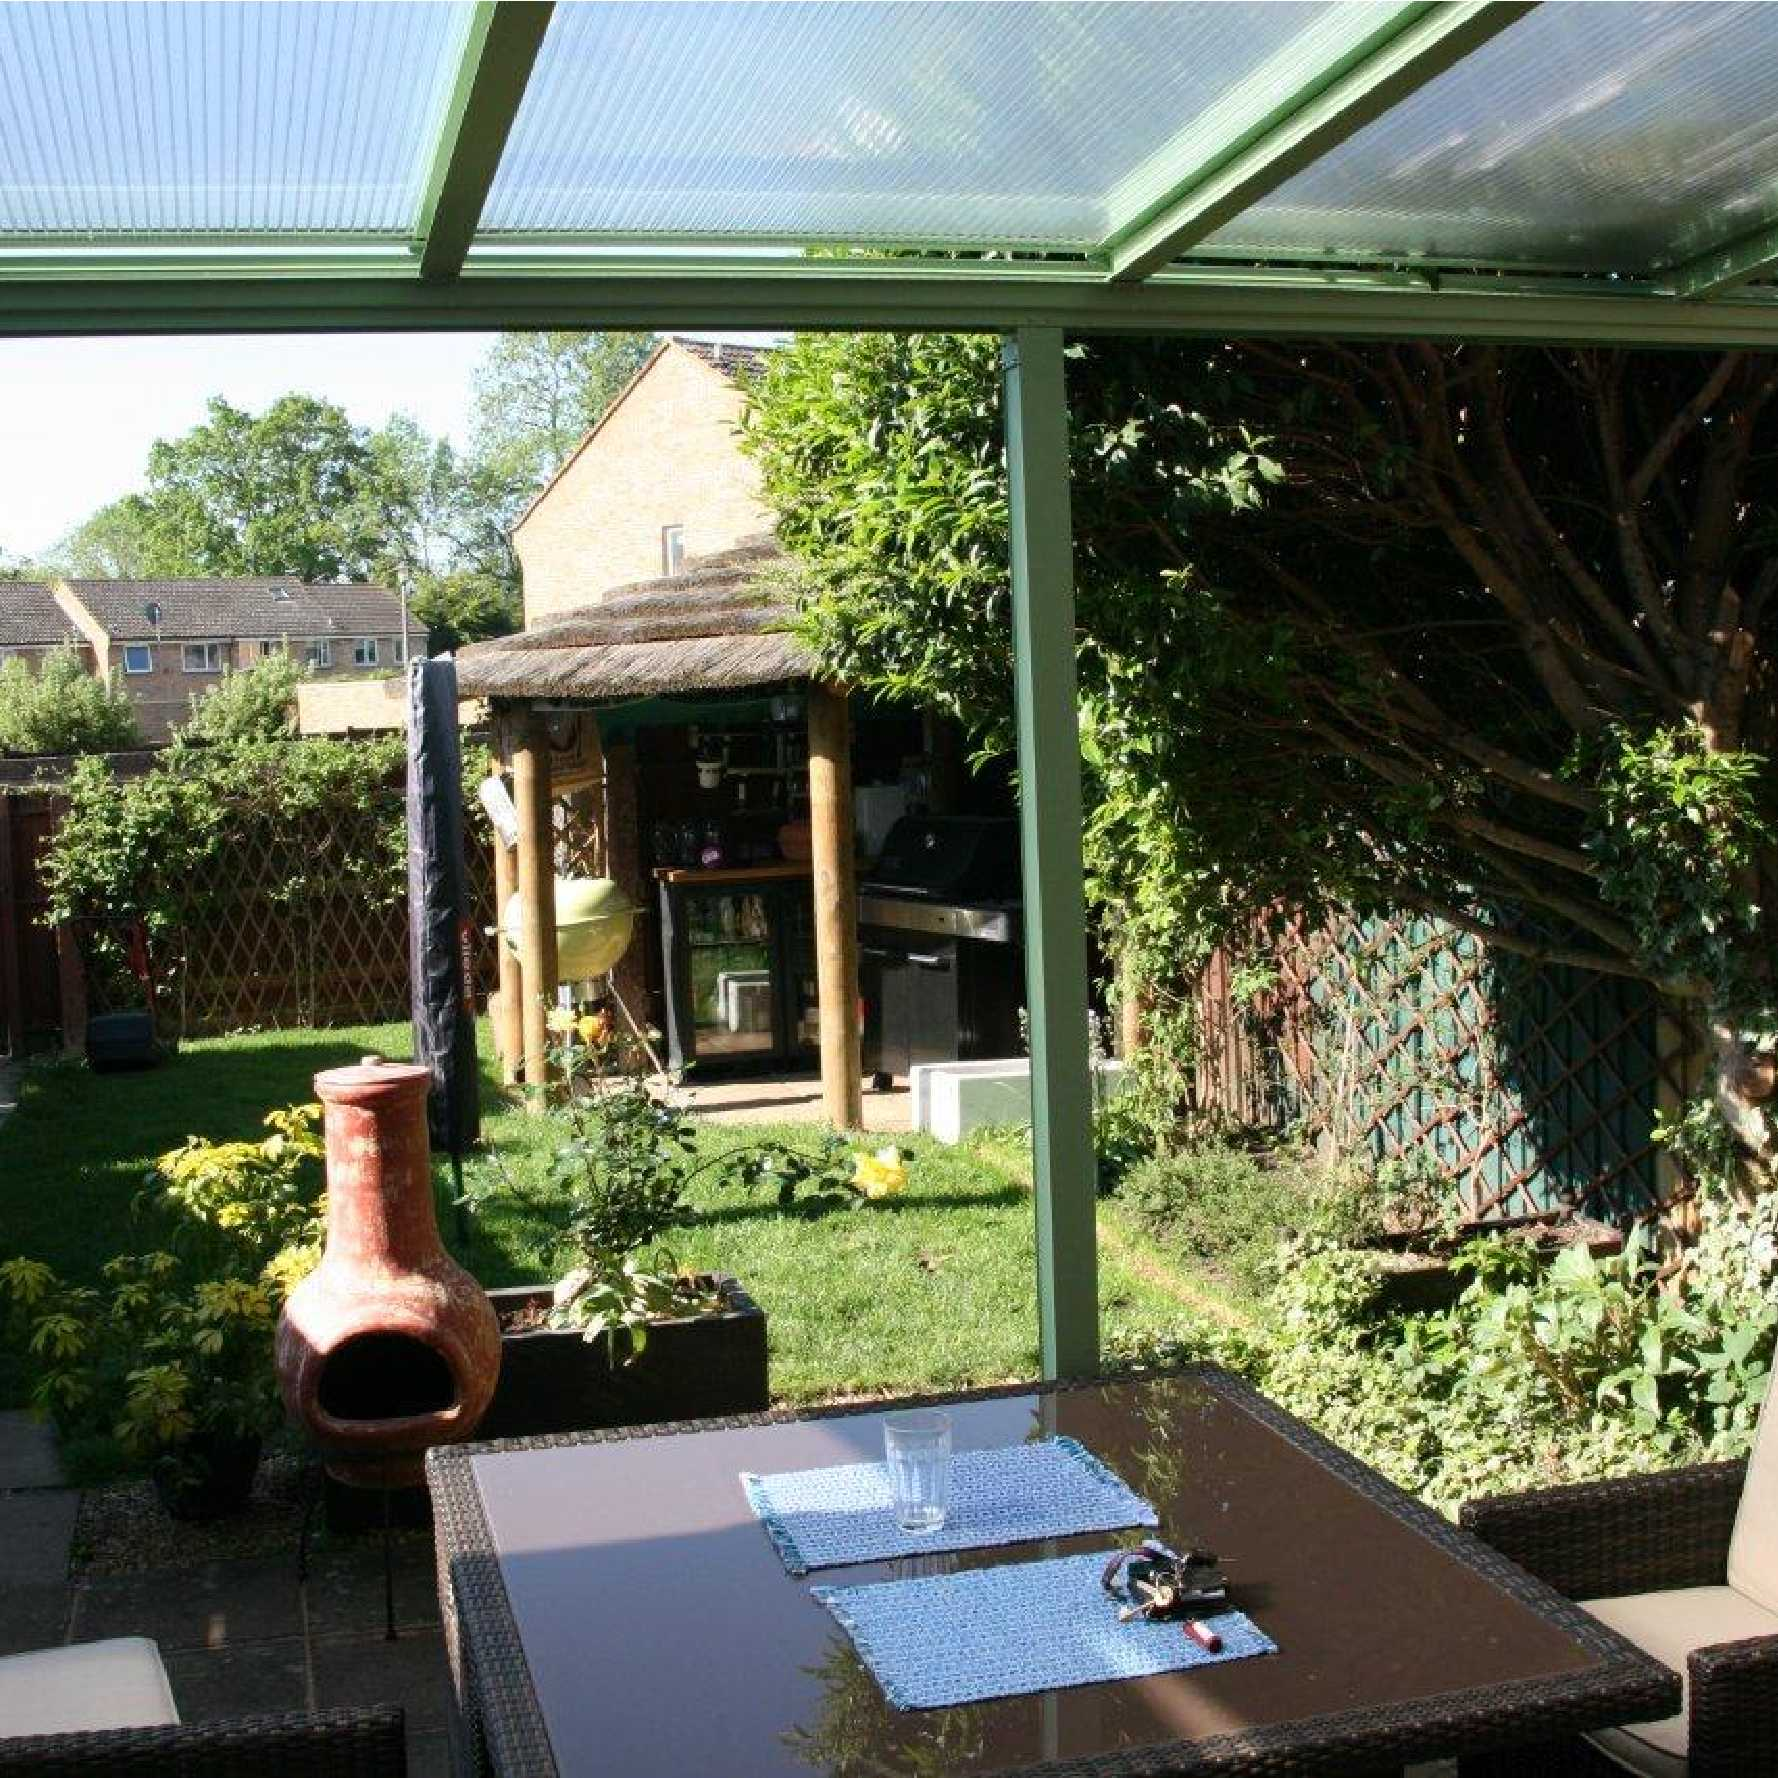 Affordable Omega Smart White Lean-To Canopy with 16mm Polycarbonate Glazing - 8.0m (W) x 4.5m (P), (4) Supporting Posts